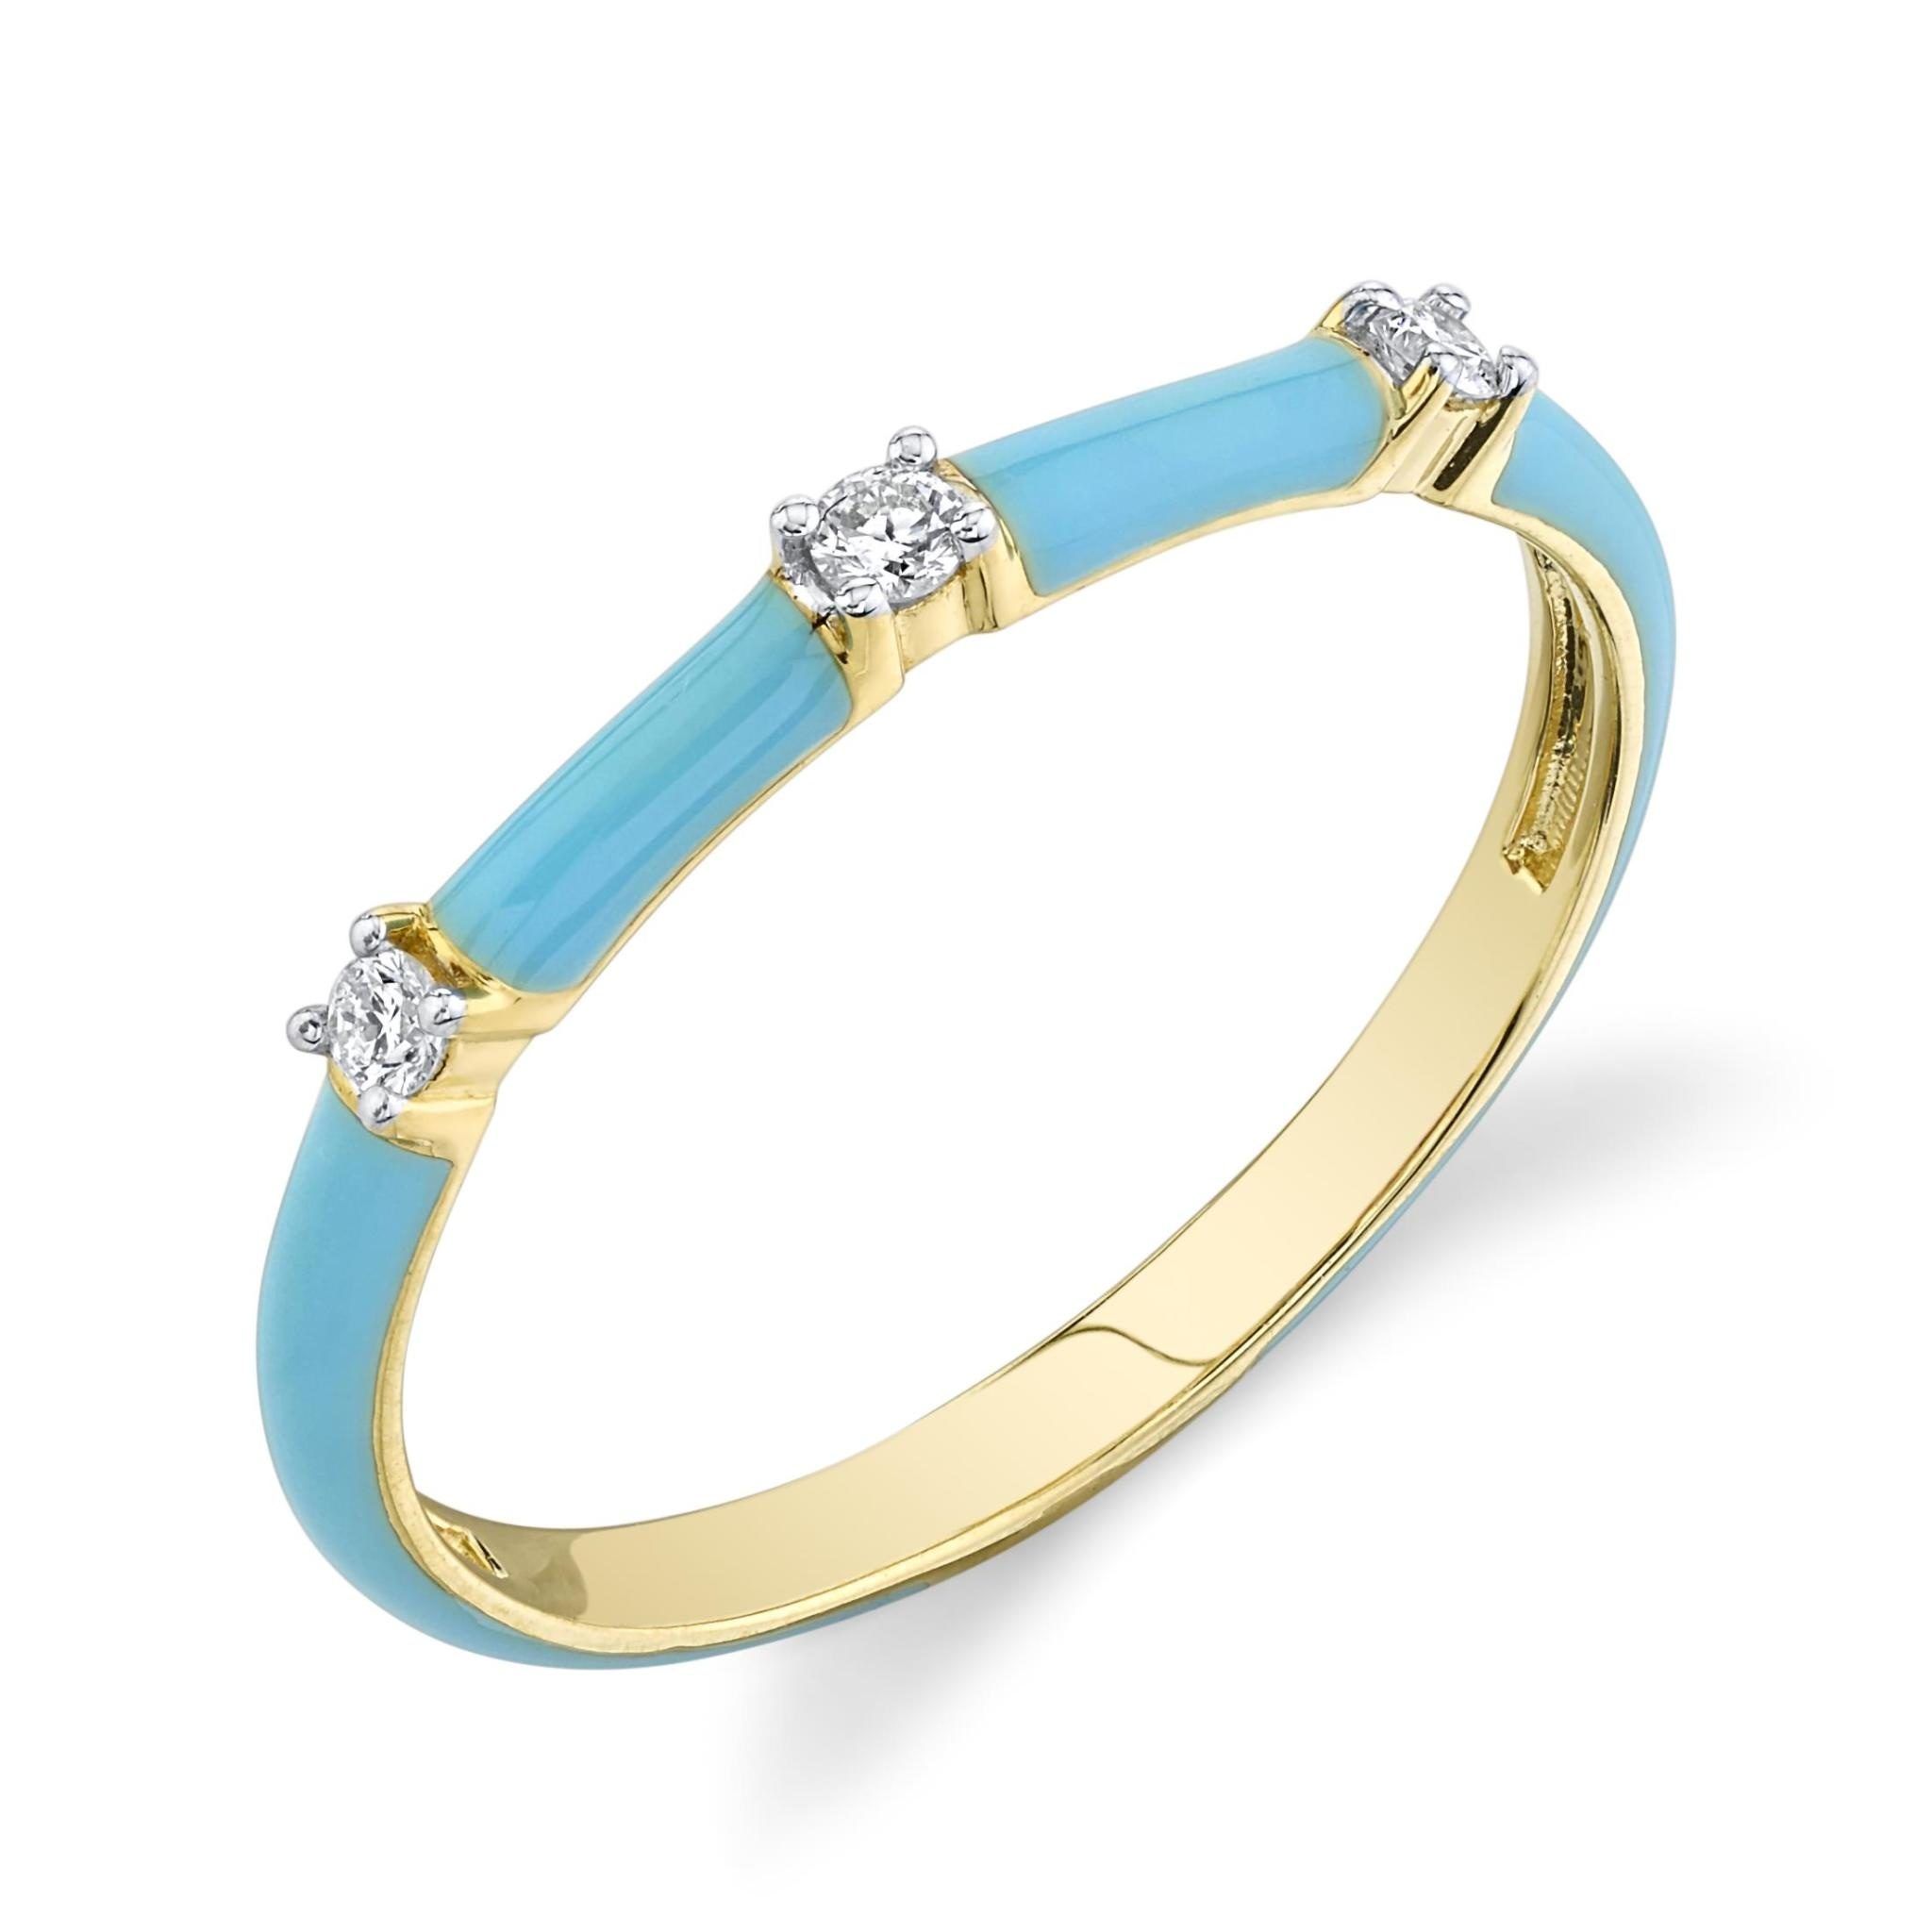 Turquoise Enamel Stackers Ring with White Diamond Details (6)